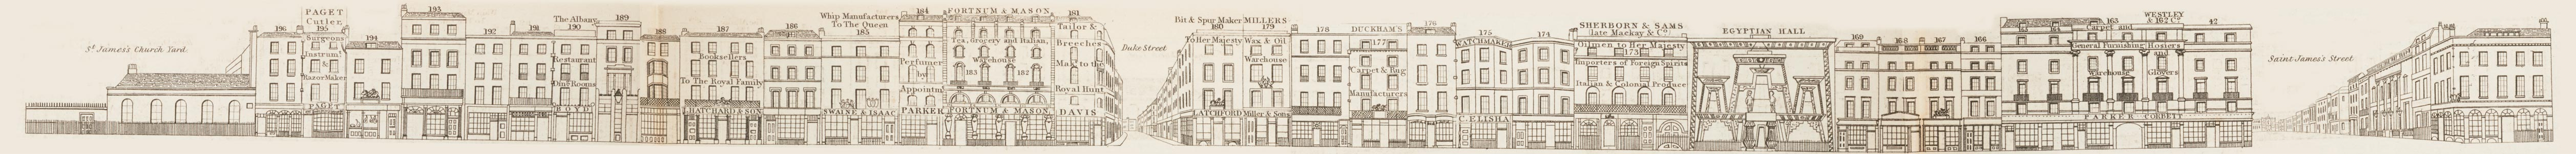 map - Tallis's London street views : No. 23. Piccadilly, division 2 (south)